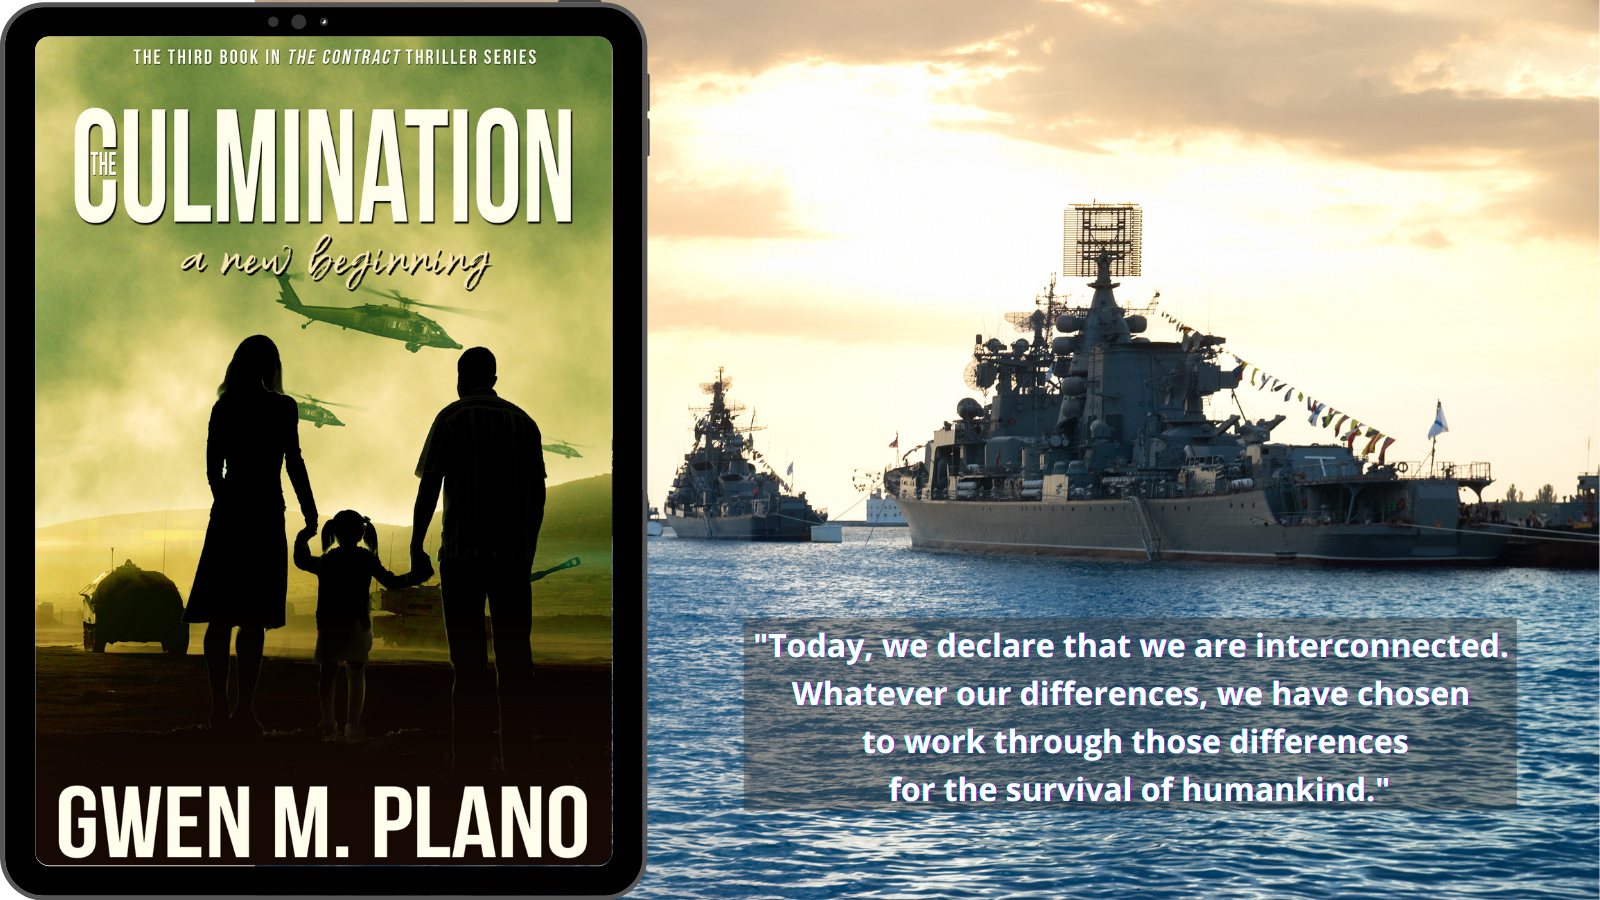 kindle reader with book  The Culmination, a military thriller shows silhouettes of couple holding hands with young girl, military chopper in background